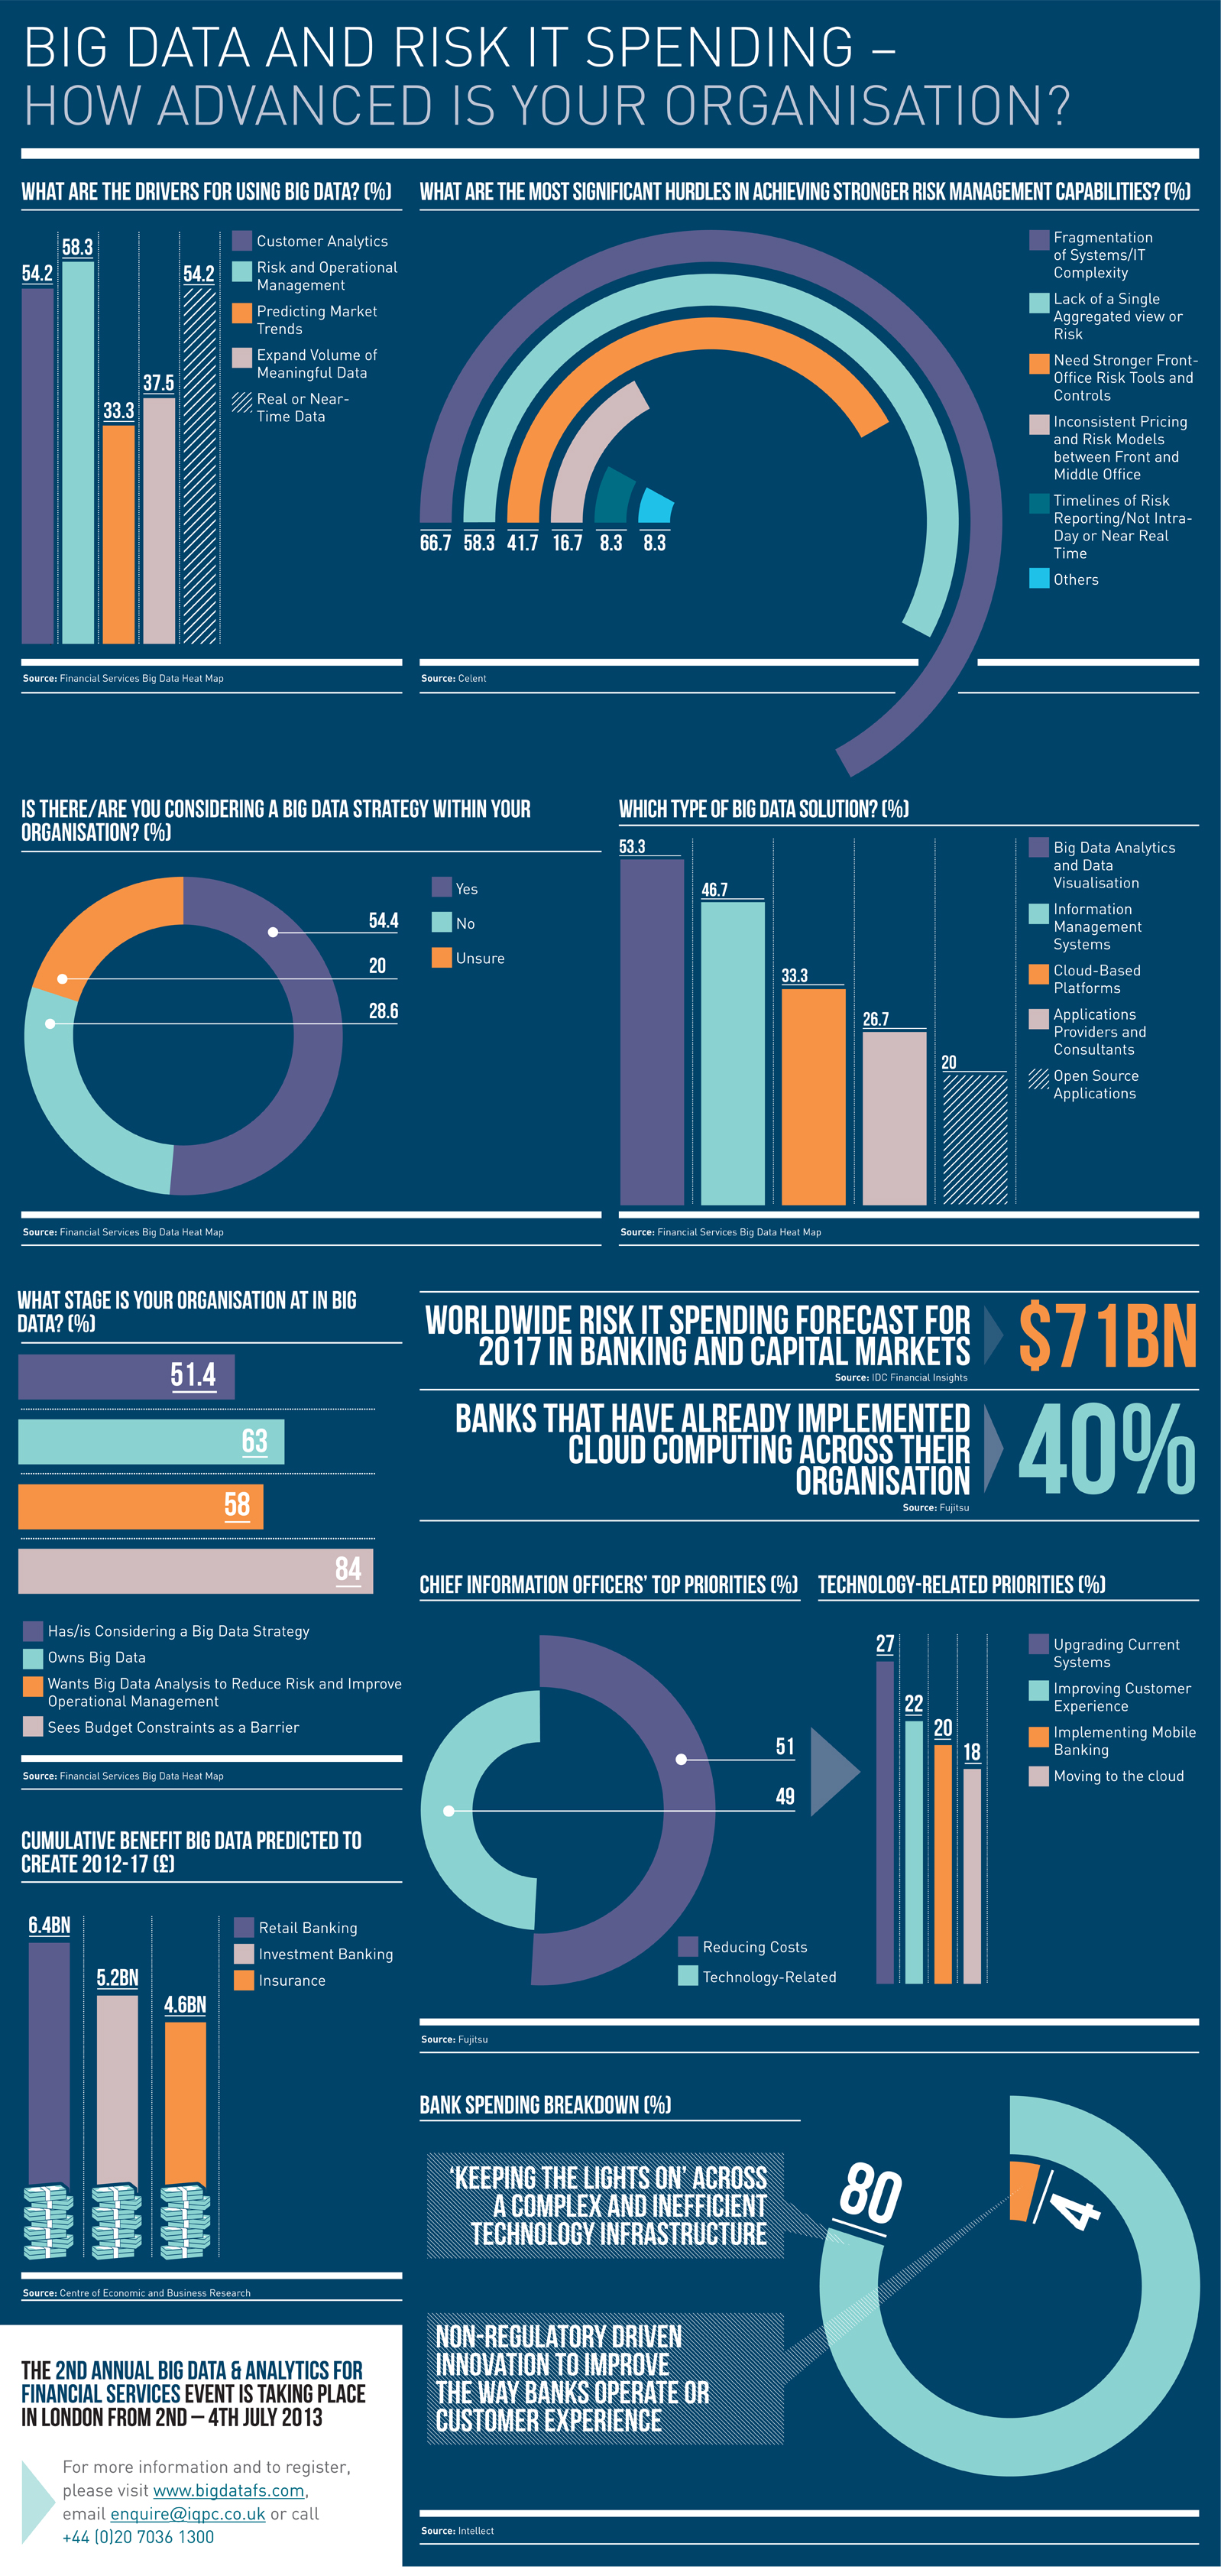 Big Data and Risk IT Spending How Advanced is Your Organisation